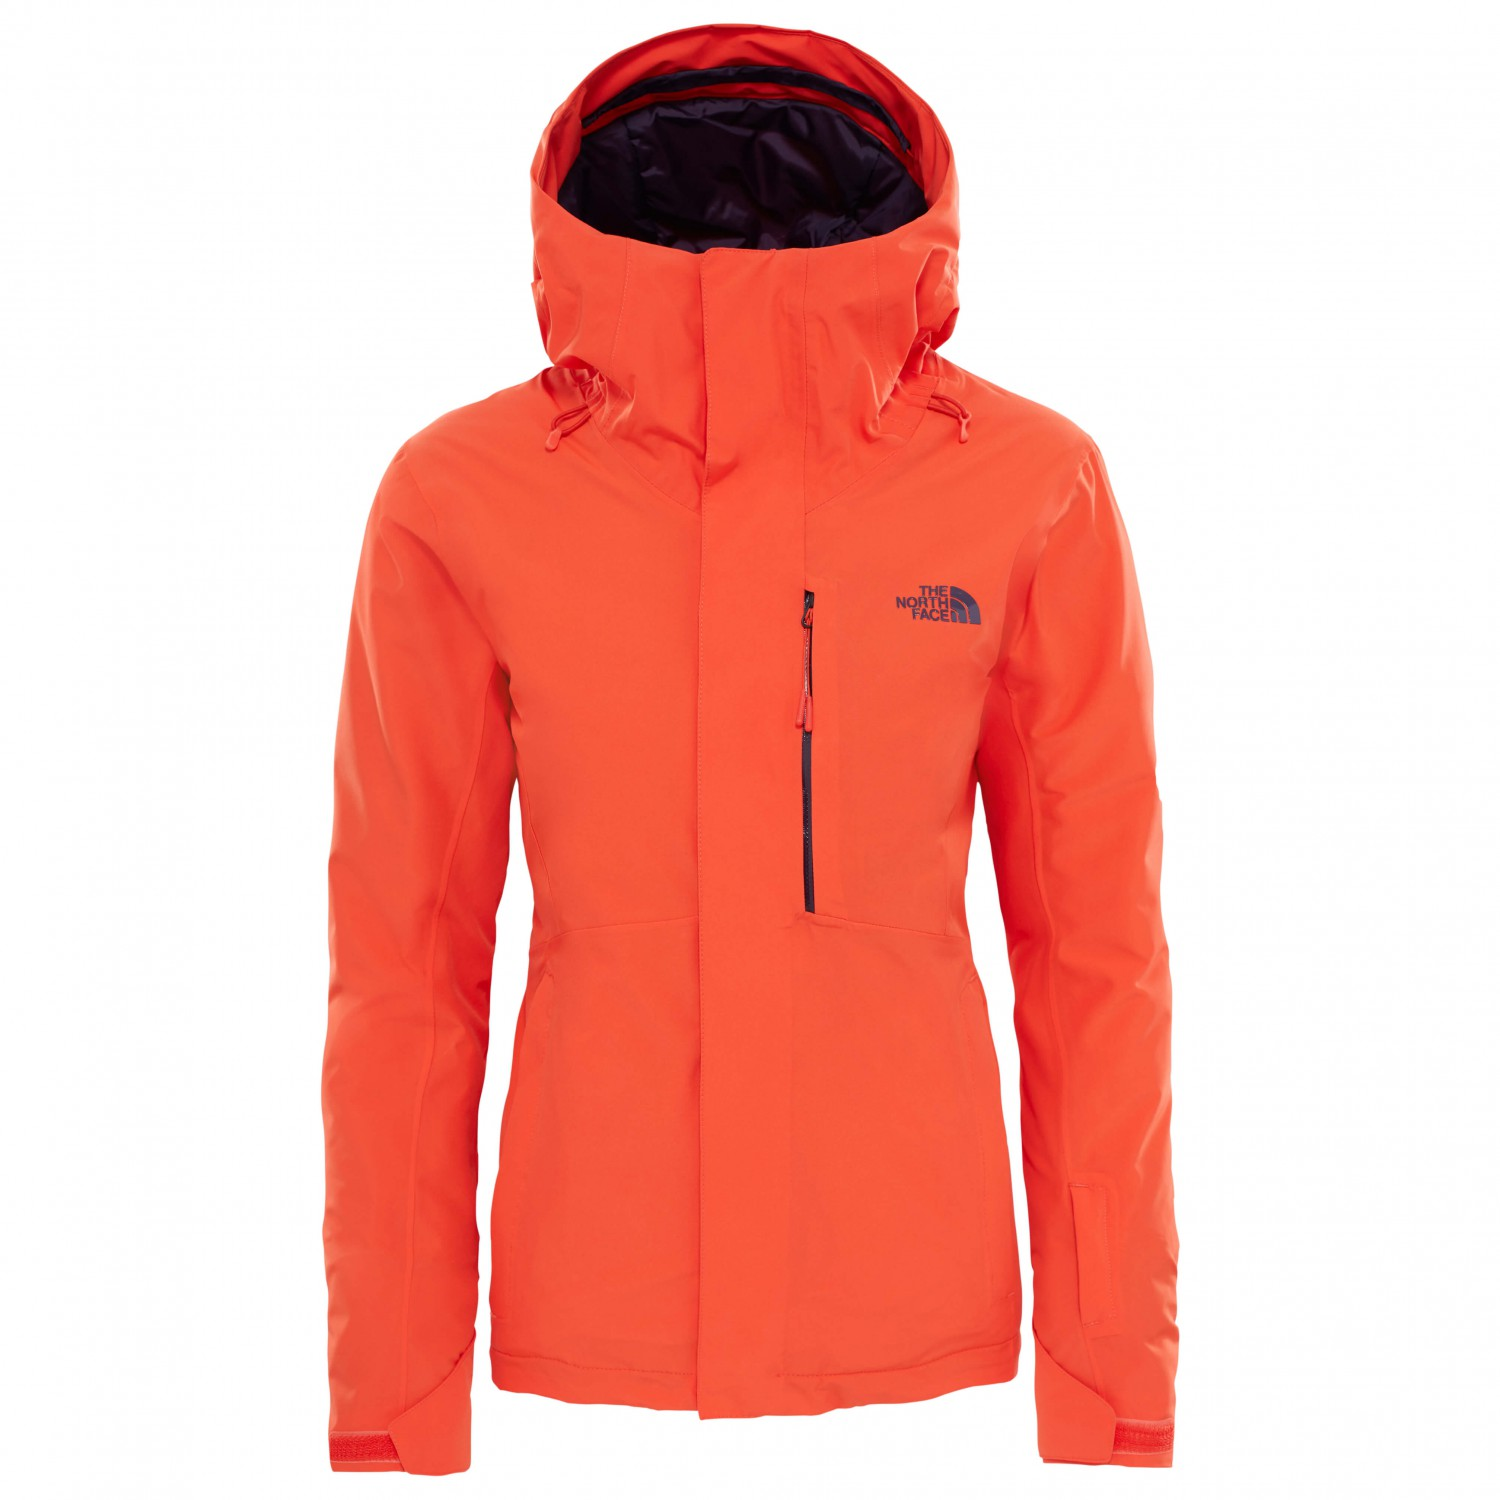 the north face descendit jacket ski jacket women 39 s. Black Bedroom Furniture Sets. Home Design Ideas